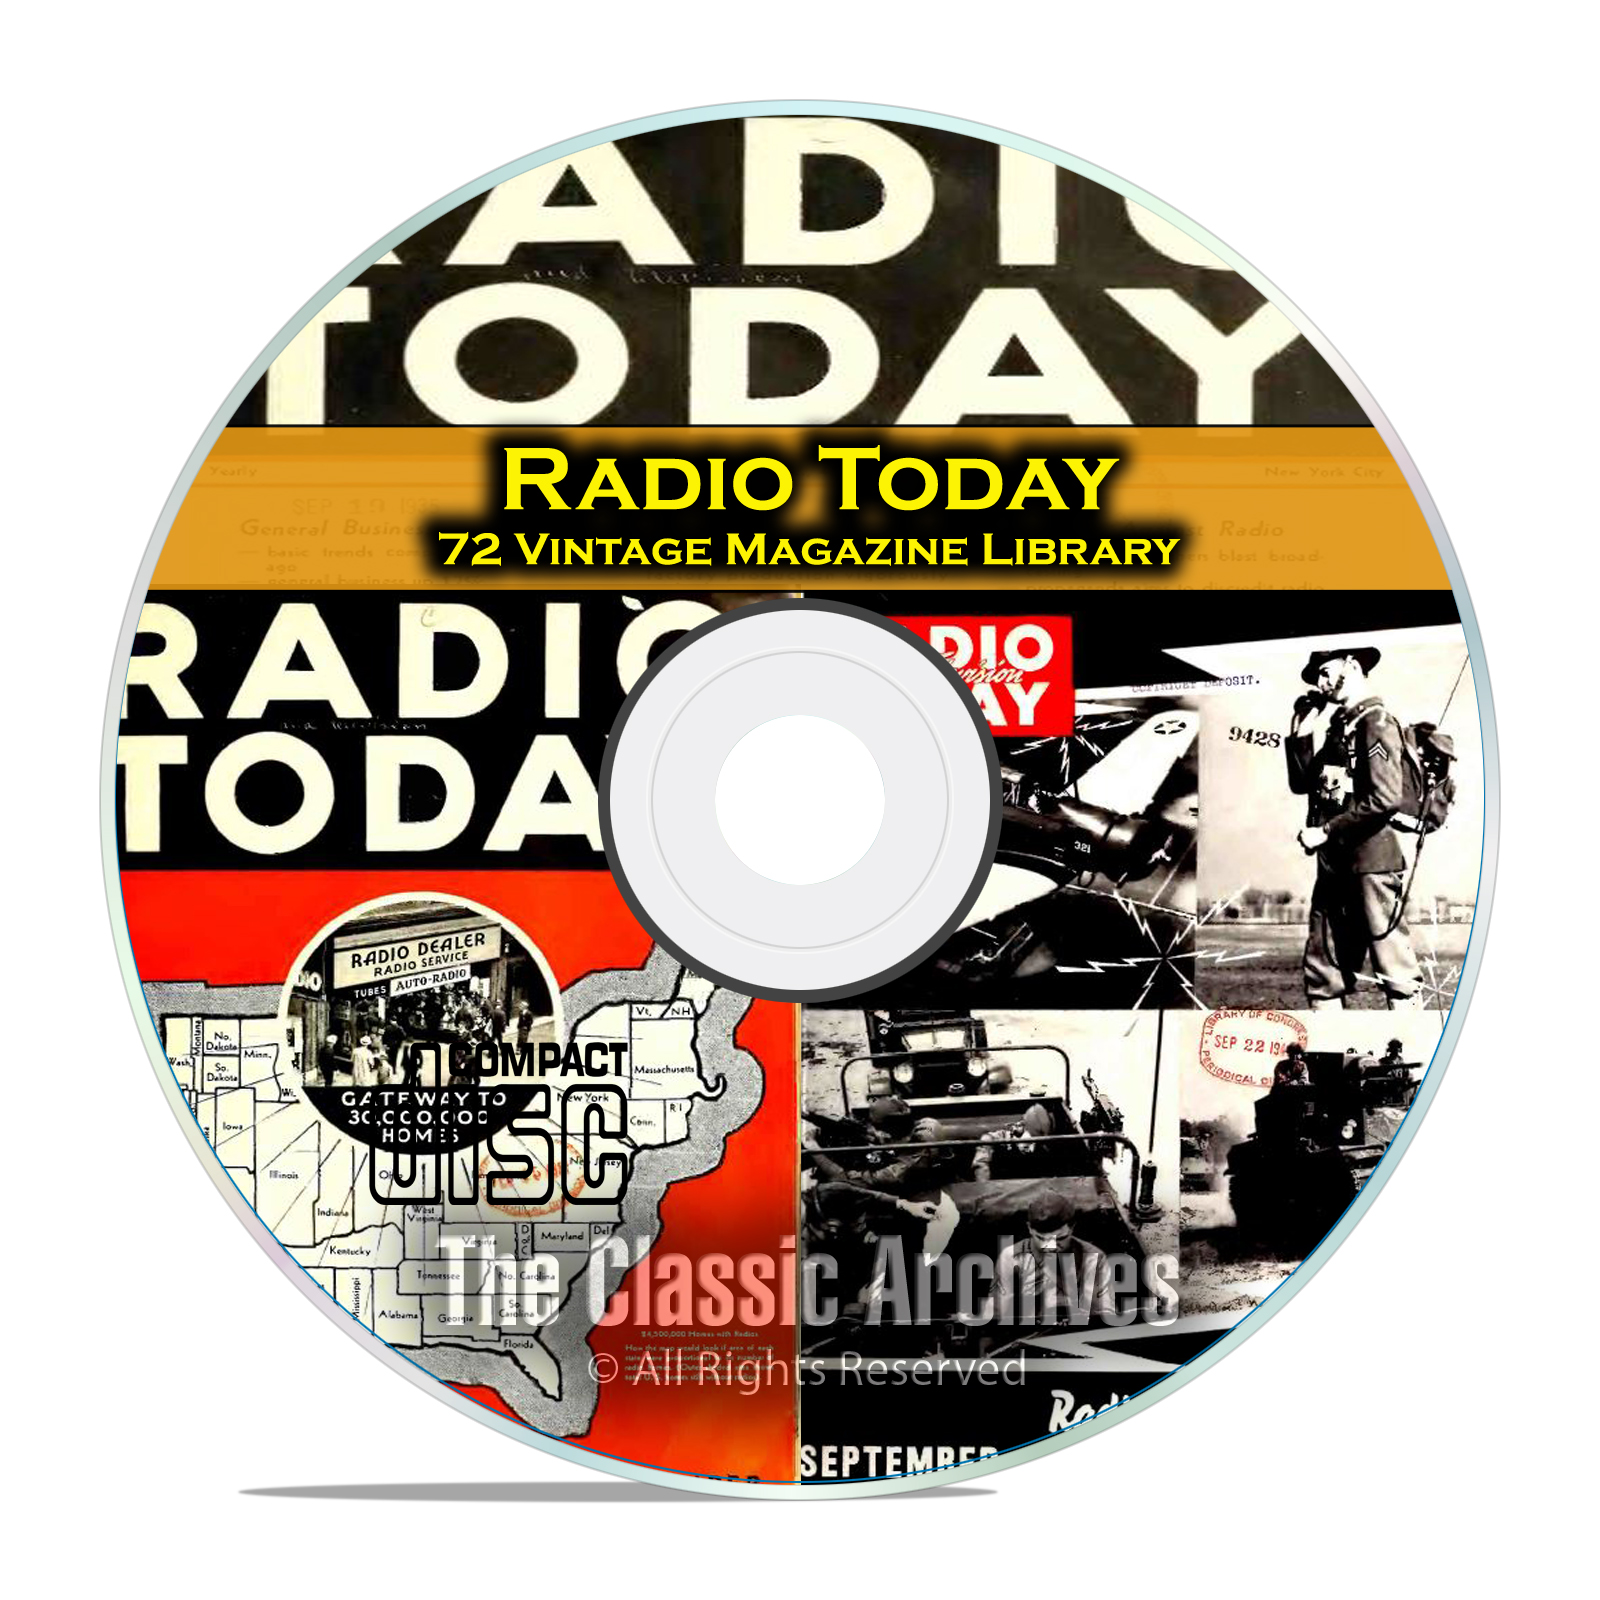 Radio Today, 72 Vintage Old Time Radio Magazine Collection in PDF on CD